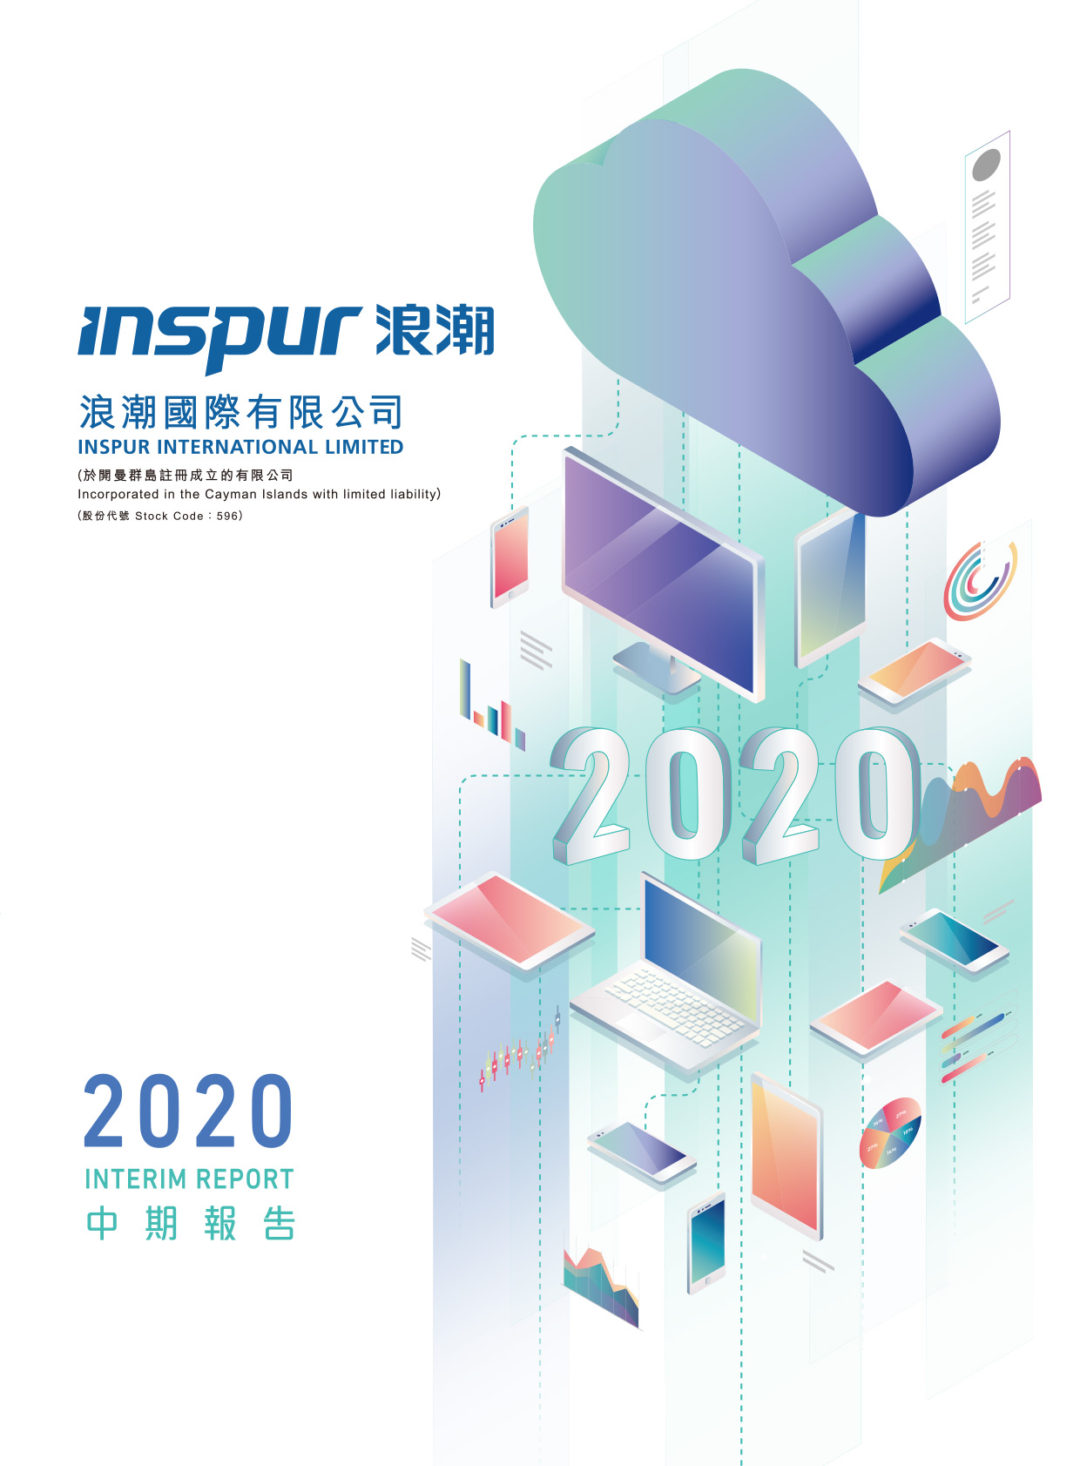 Inspur International Limited